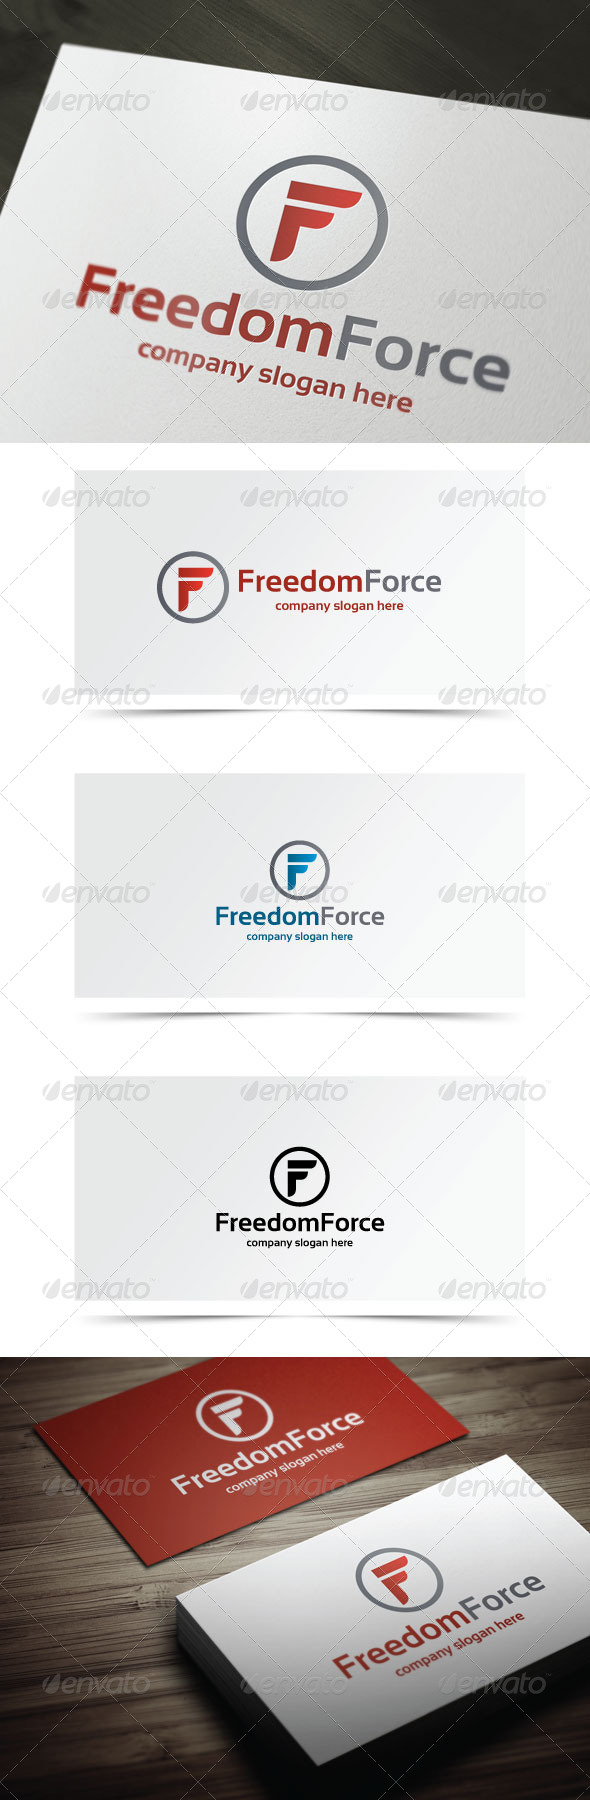 GraphicRiver Freedom Force 7056429